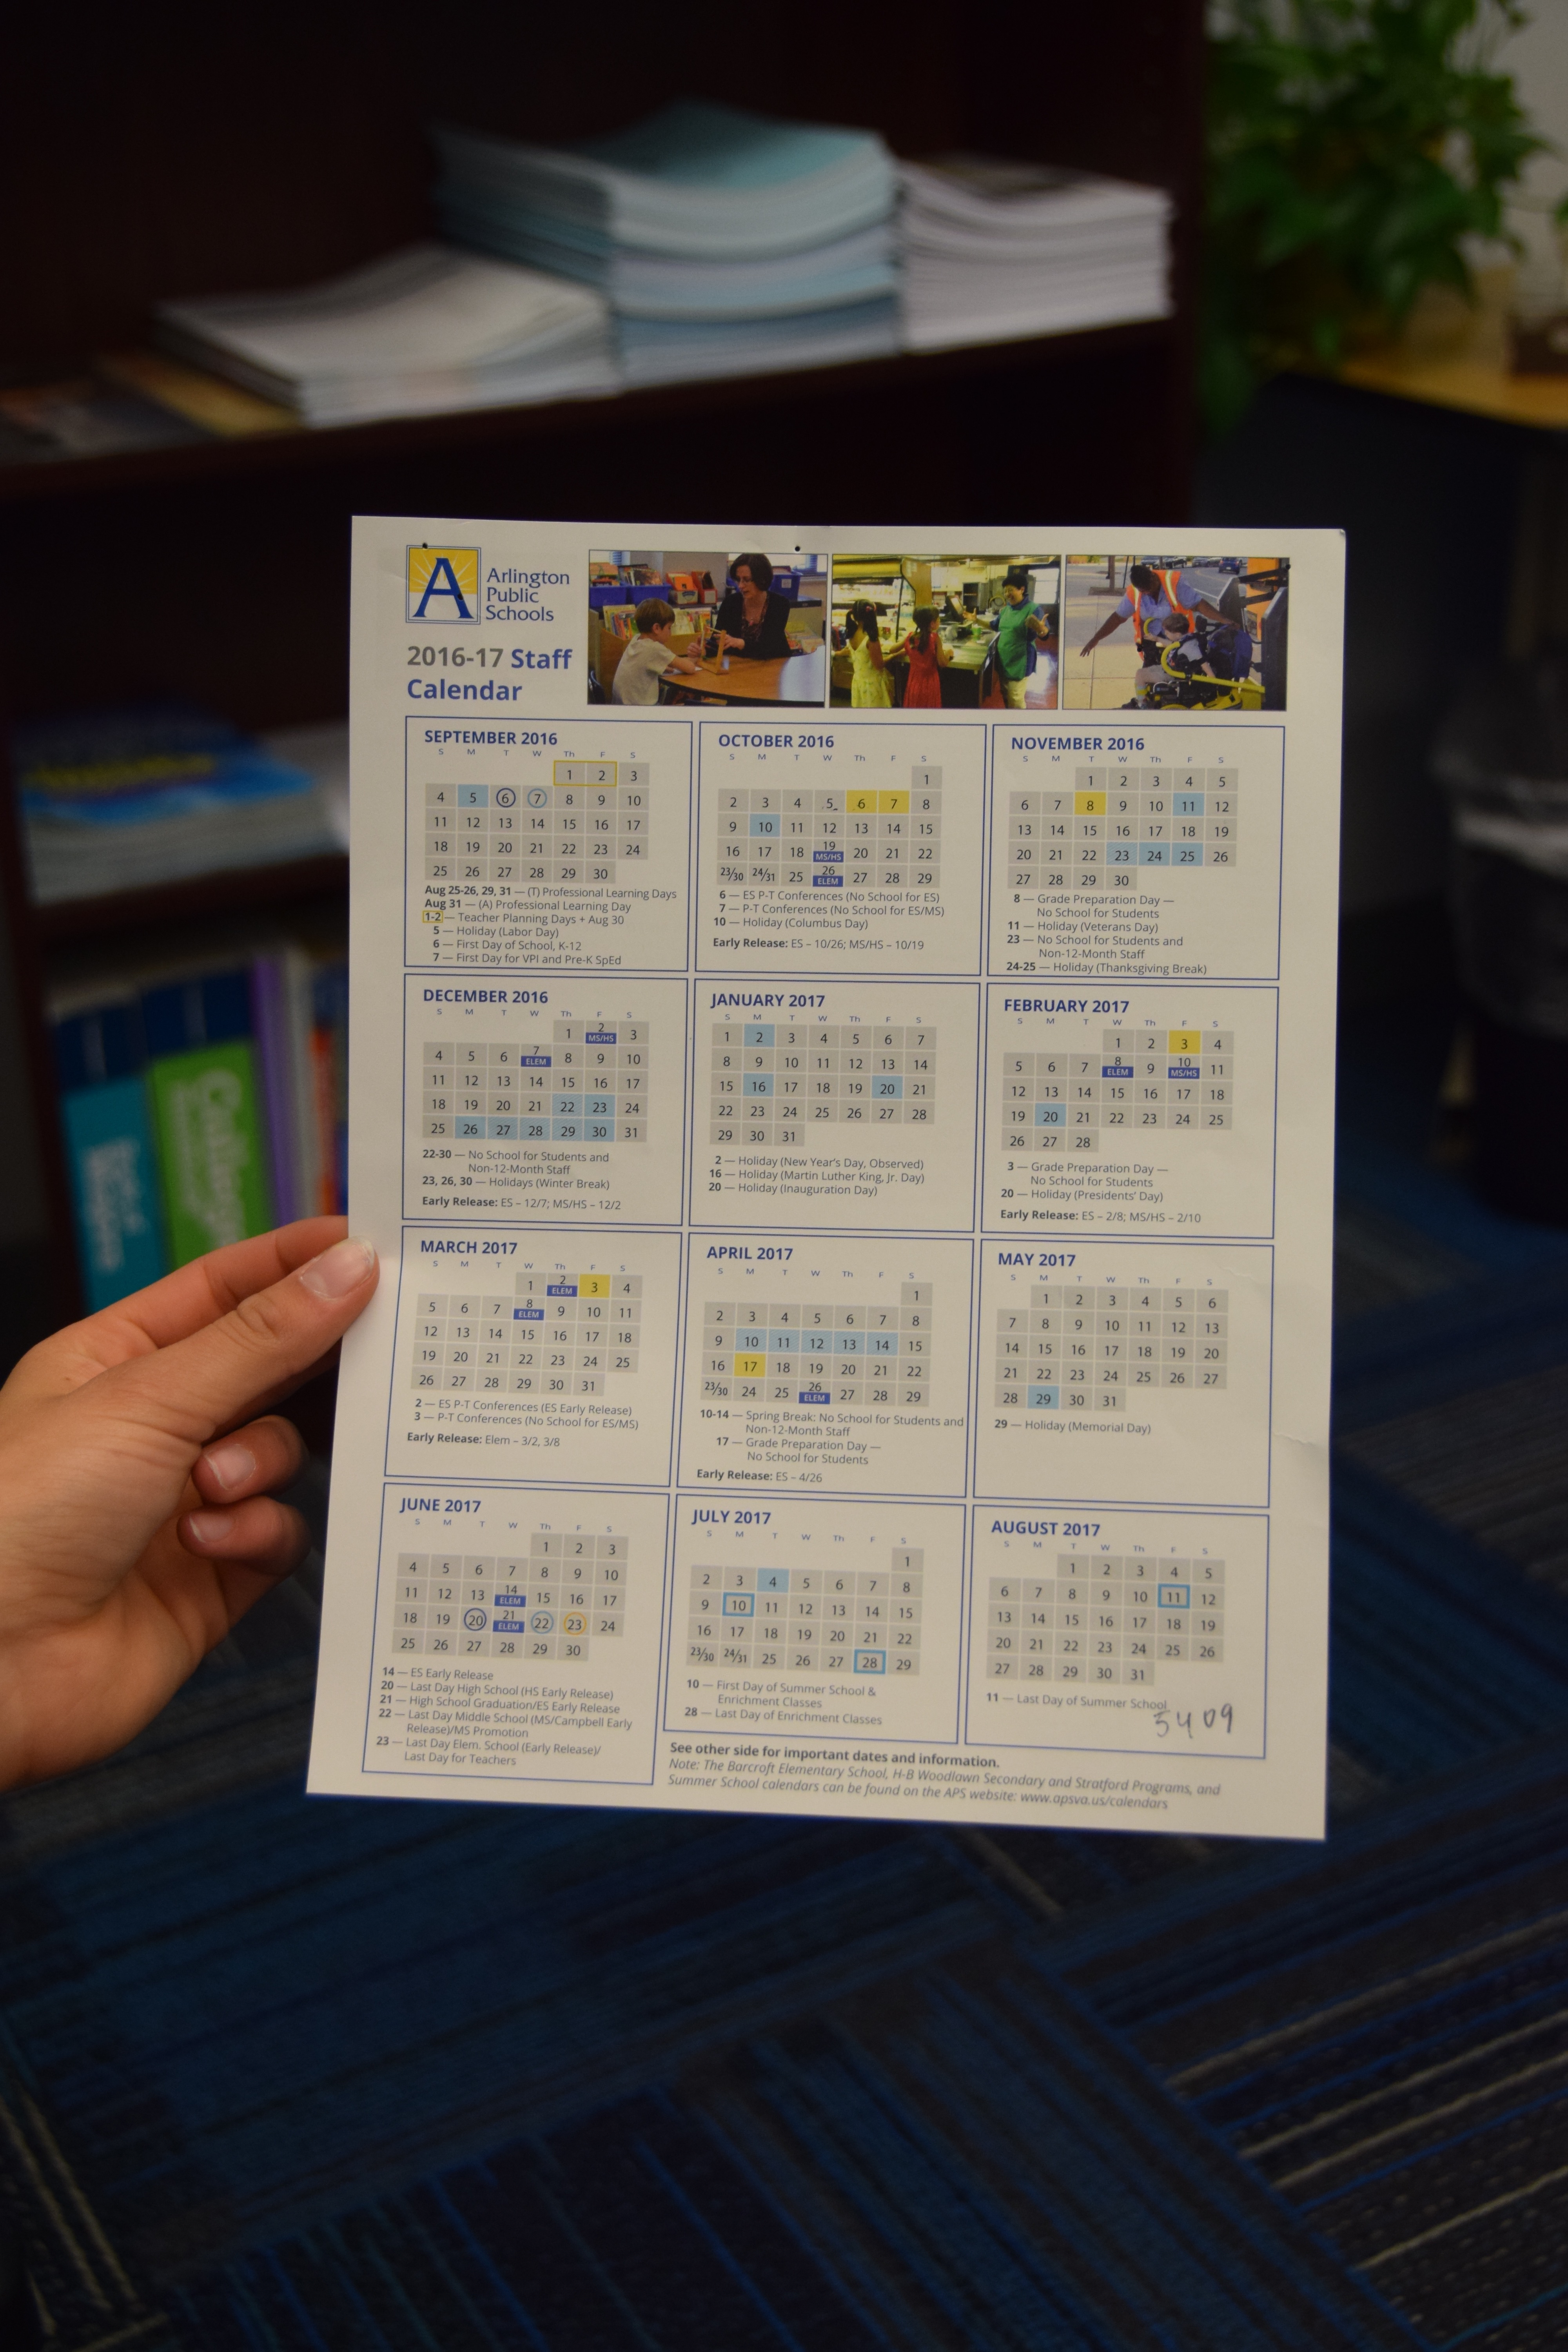 The school calendar shows all the holidays we have